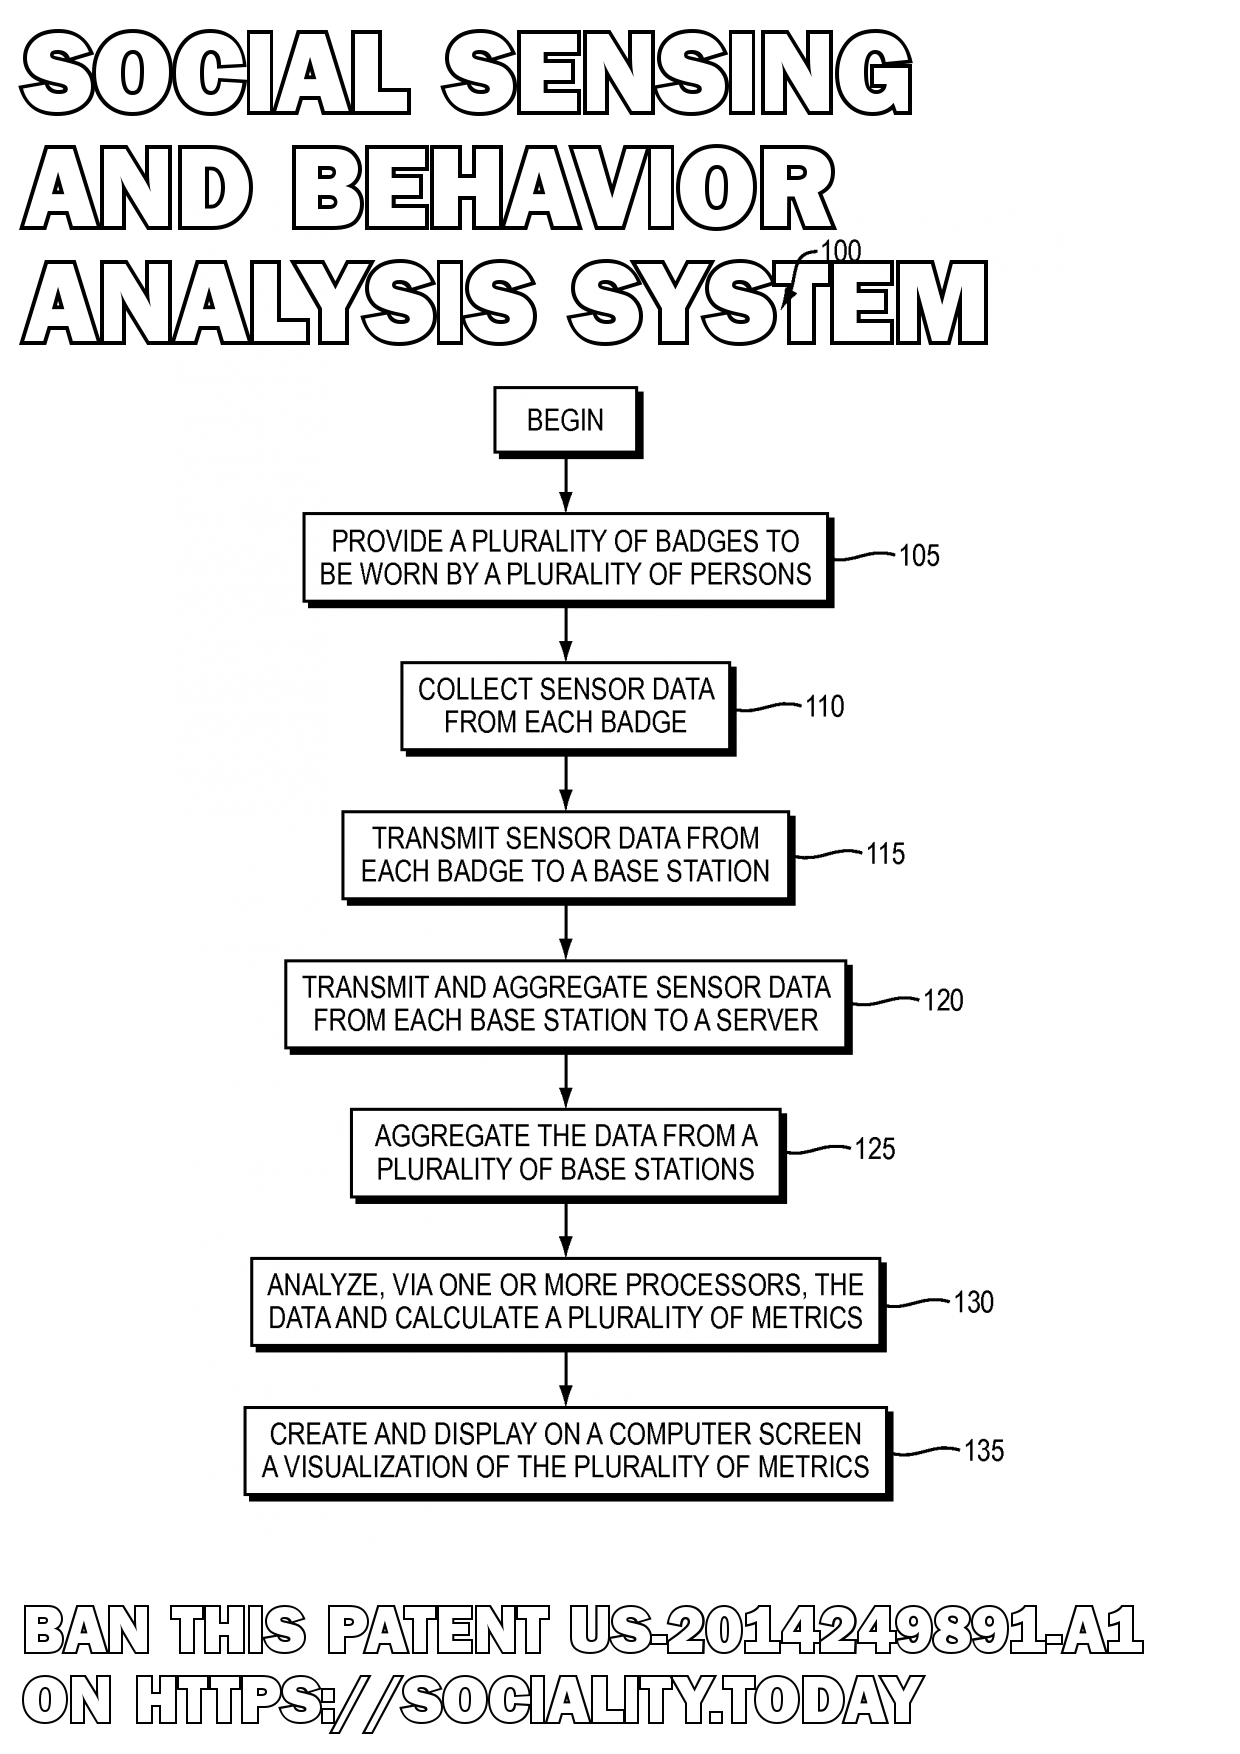 Social Sensing And Behavior Analysis System  - US-2014249891-A1